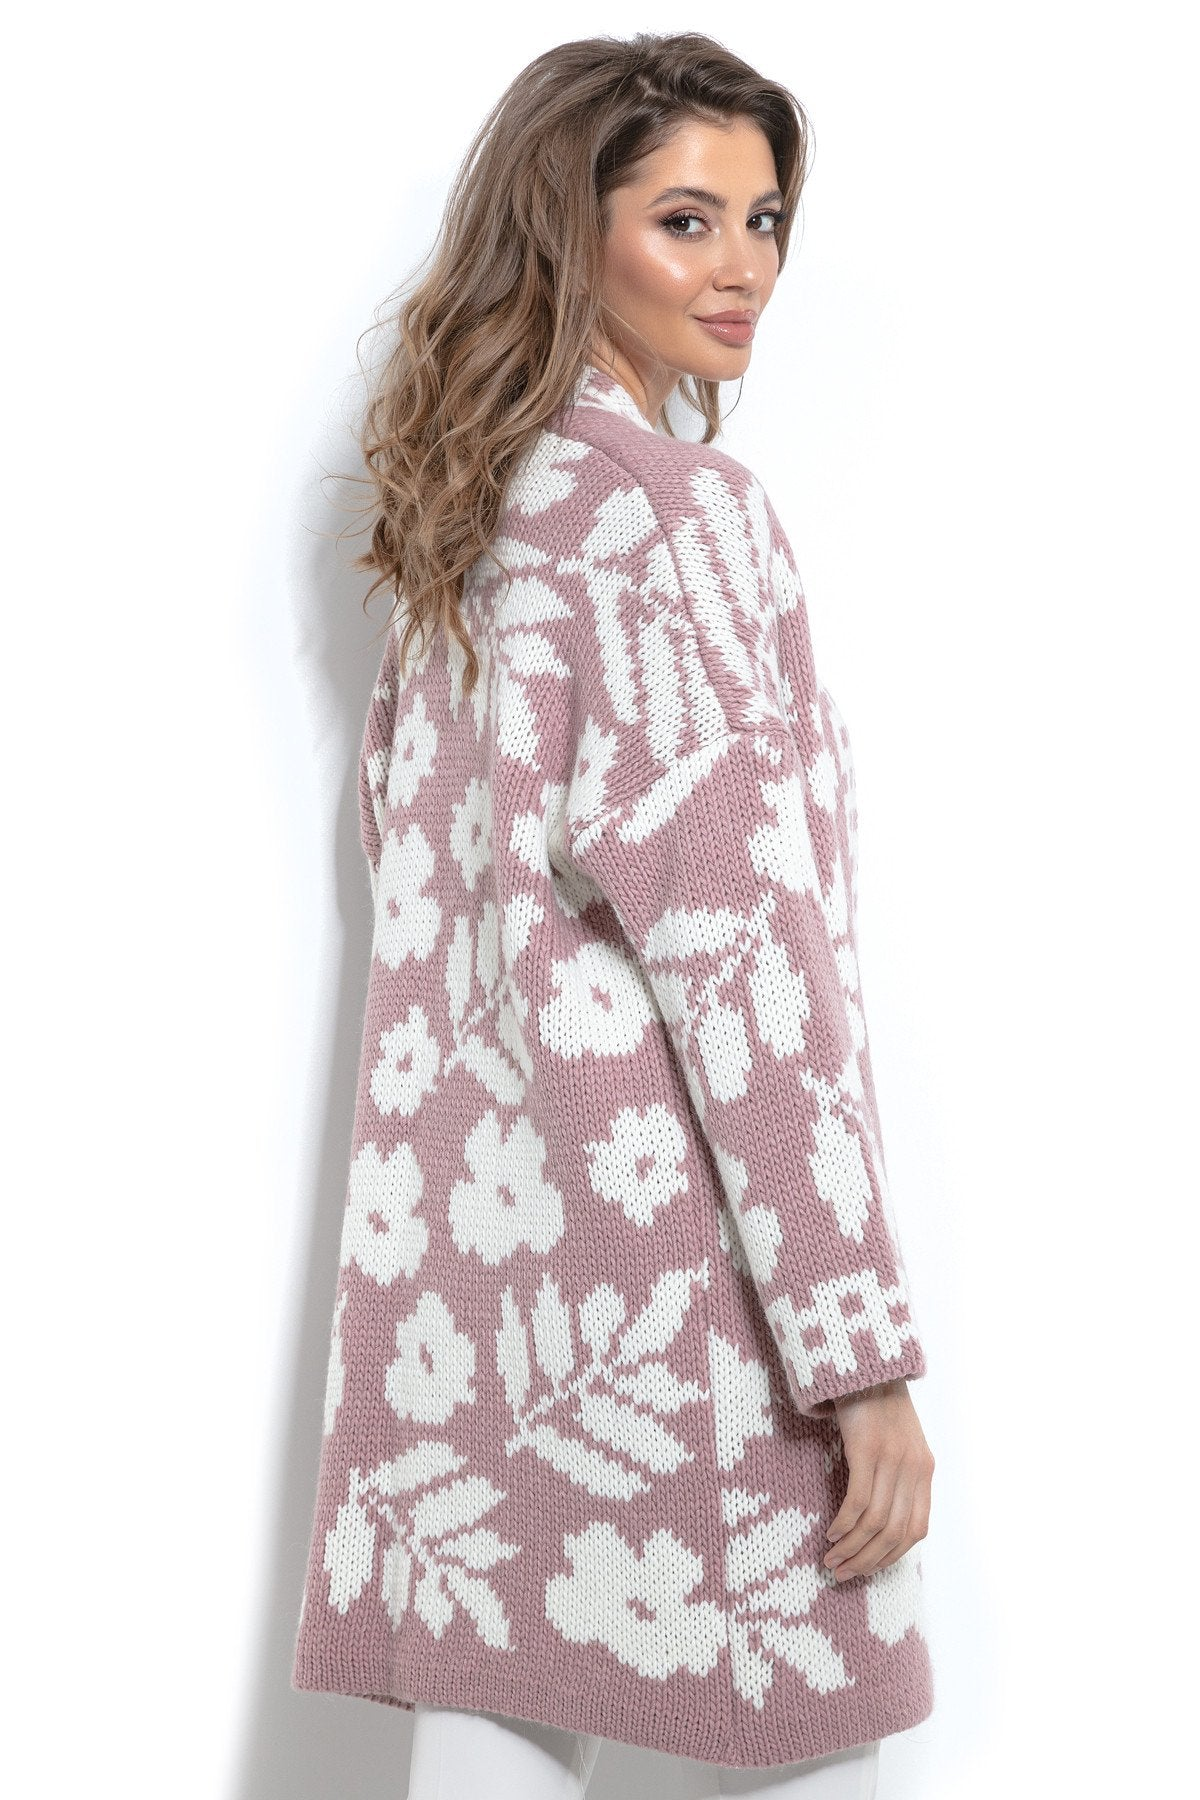 Floral Cardigan - LK's Boutique